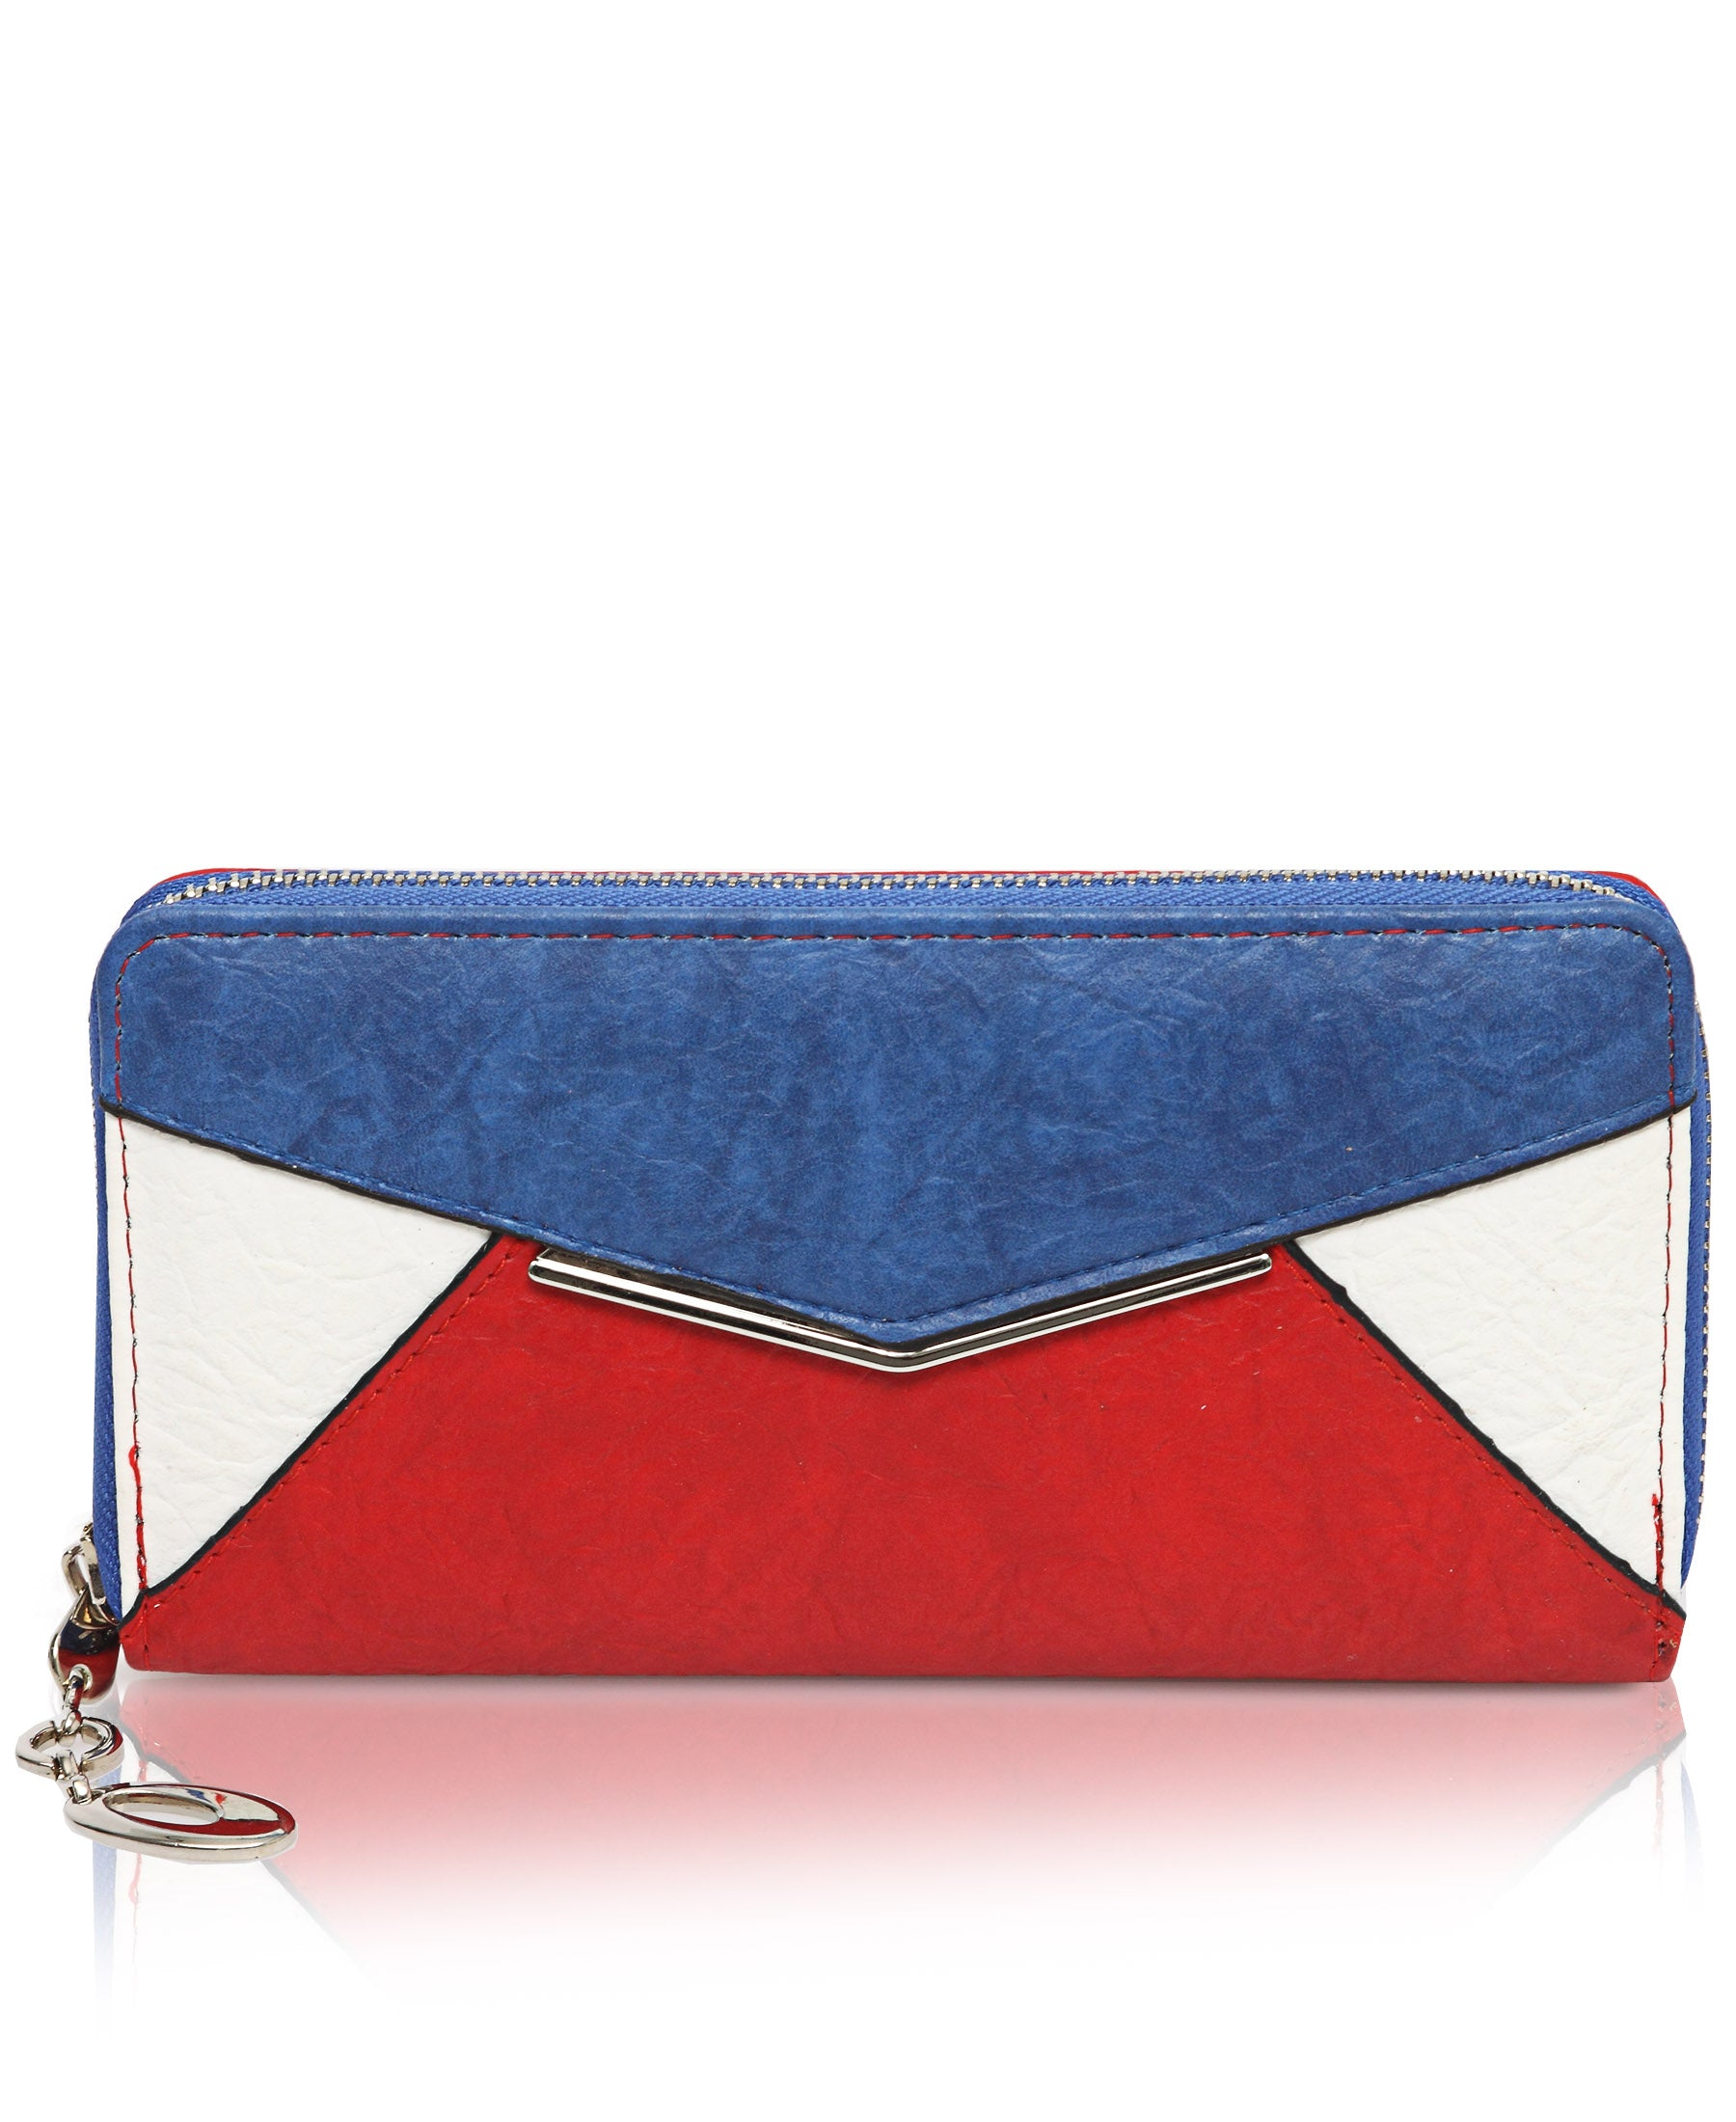 Zip Around Wallet - Red